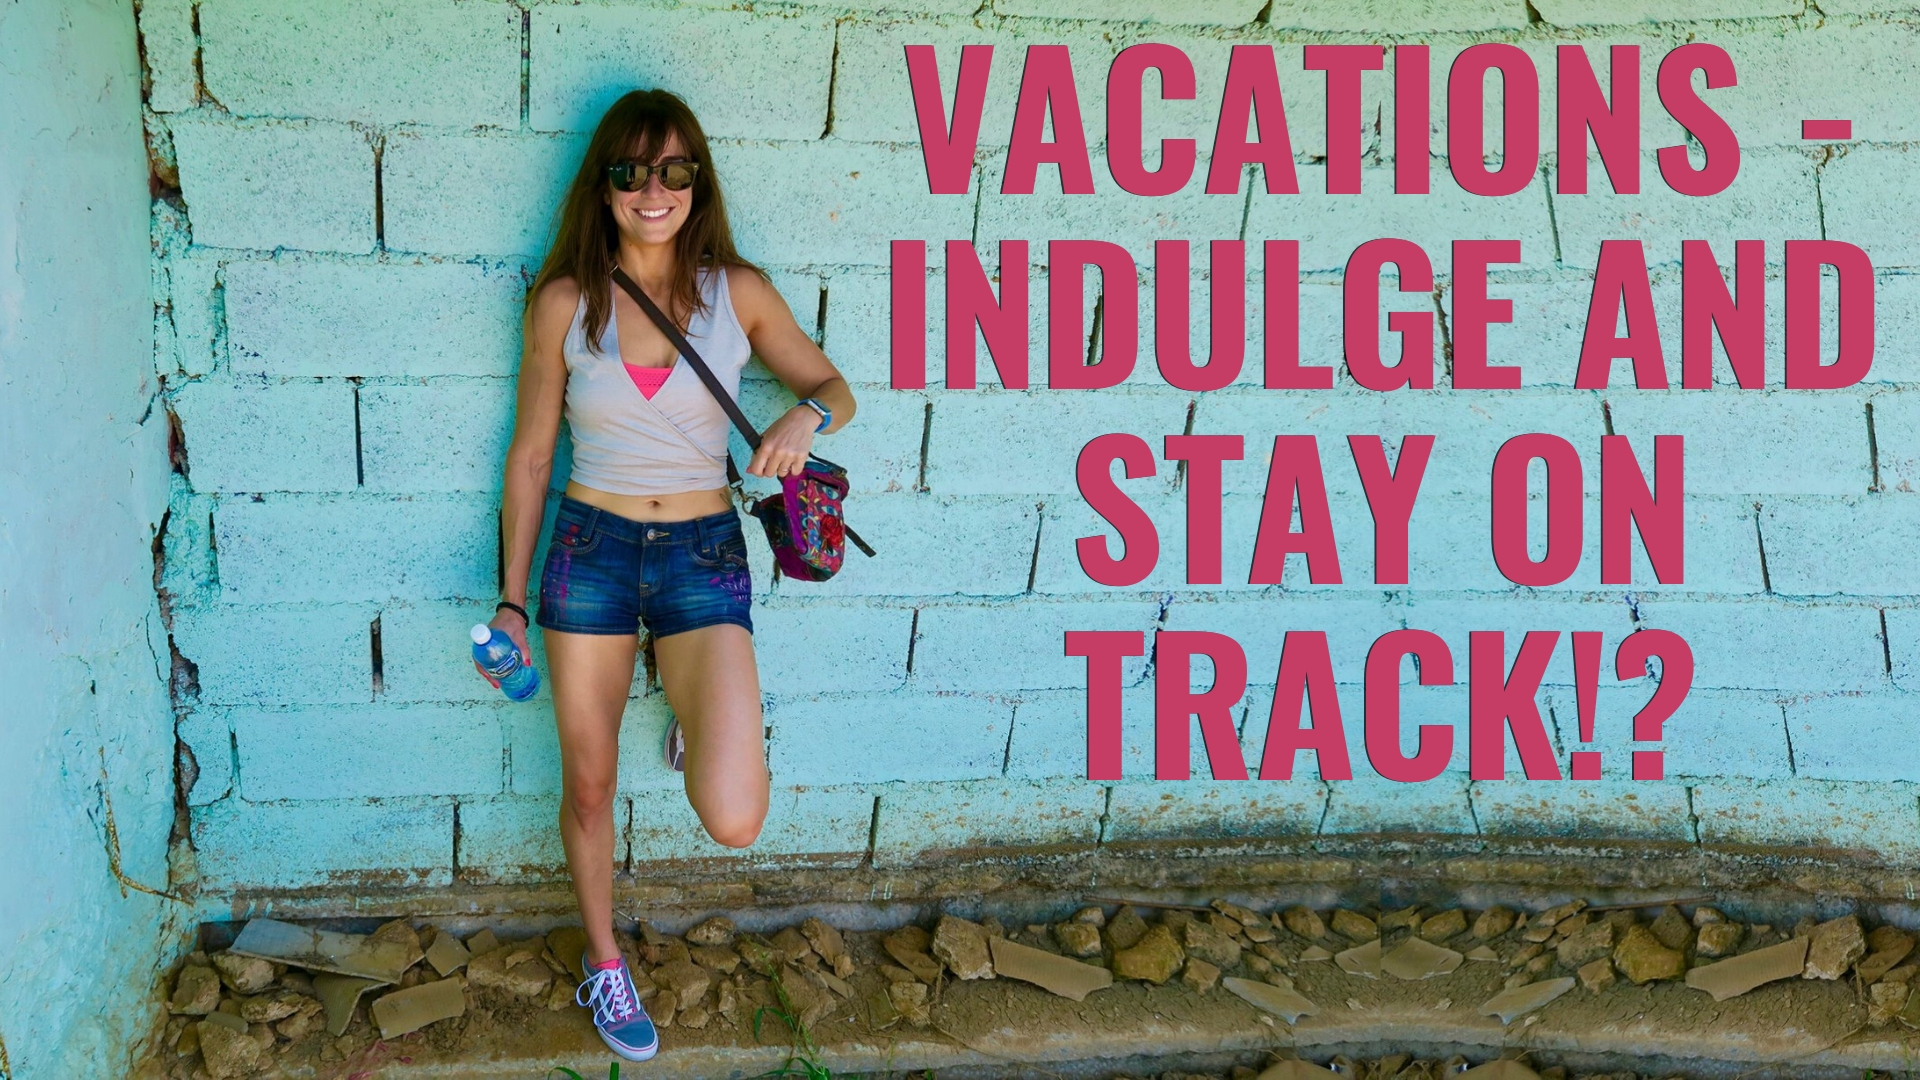 FHP S2:E23 – Vacations – Indulge AND Stay On Track!?